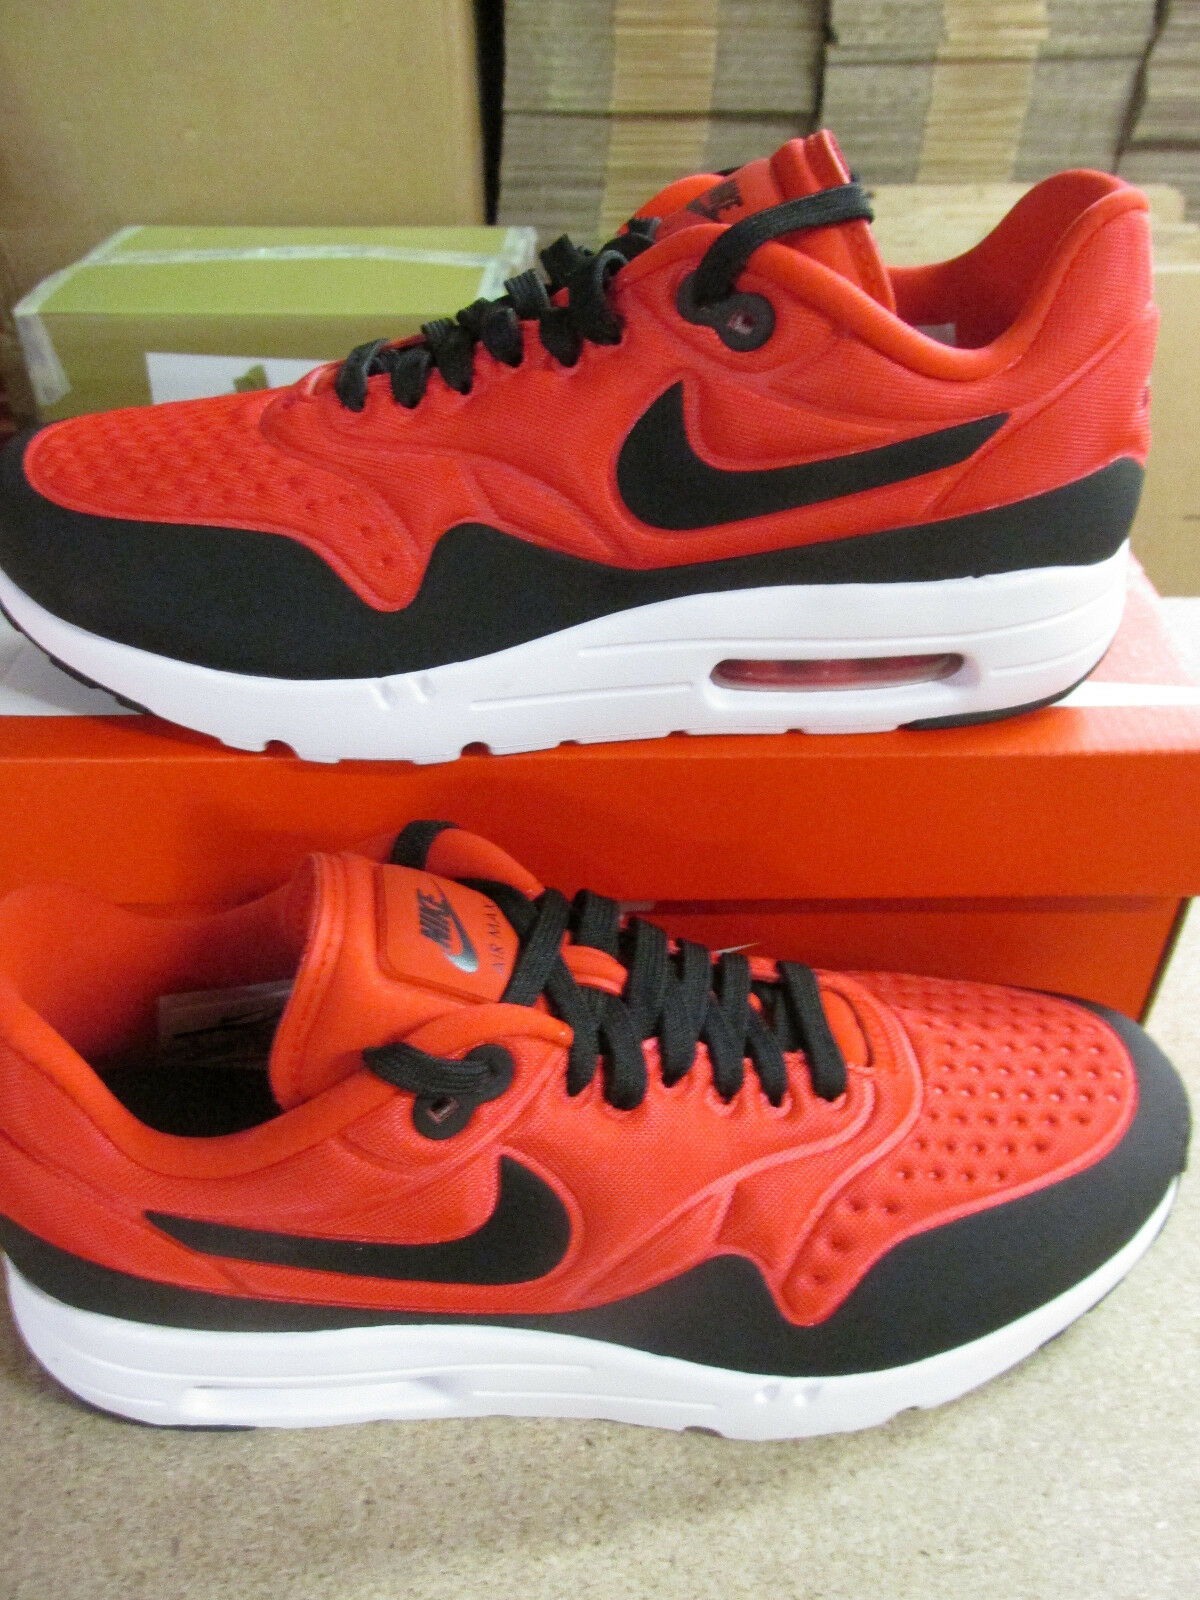 Nike Air Max 1 Ultra SE Mens Running Trainers 845038 600 Sneakers Shoes